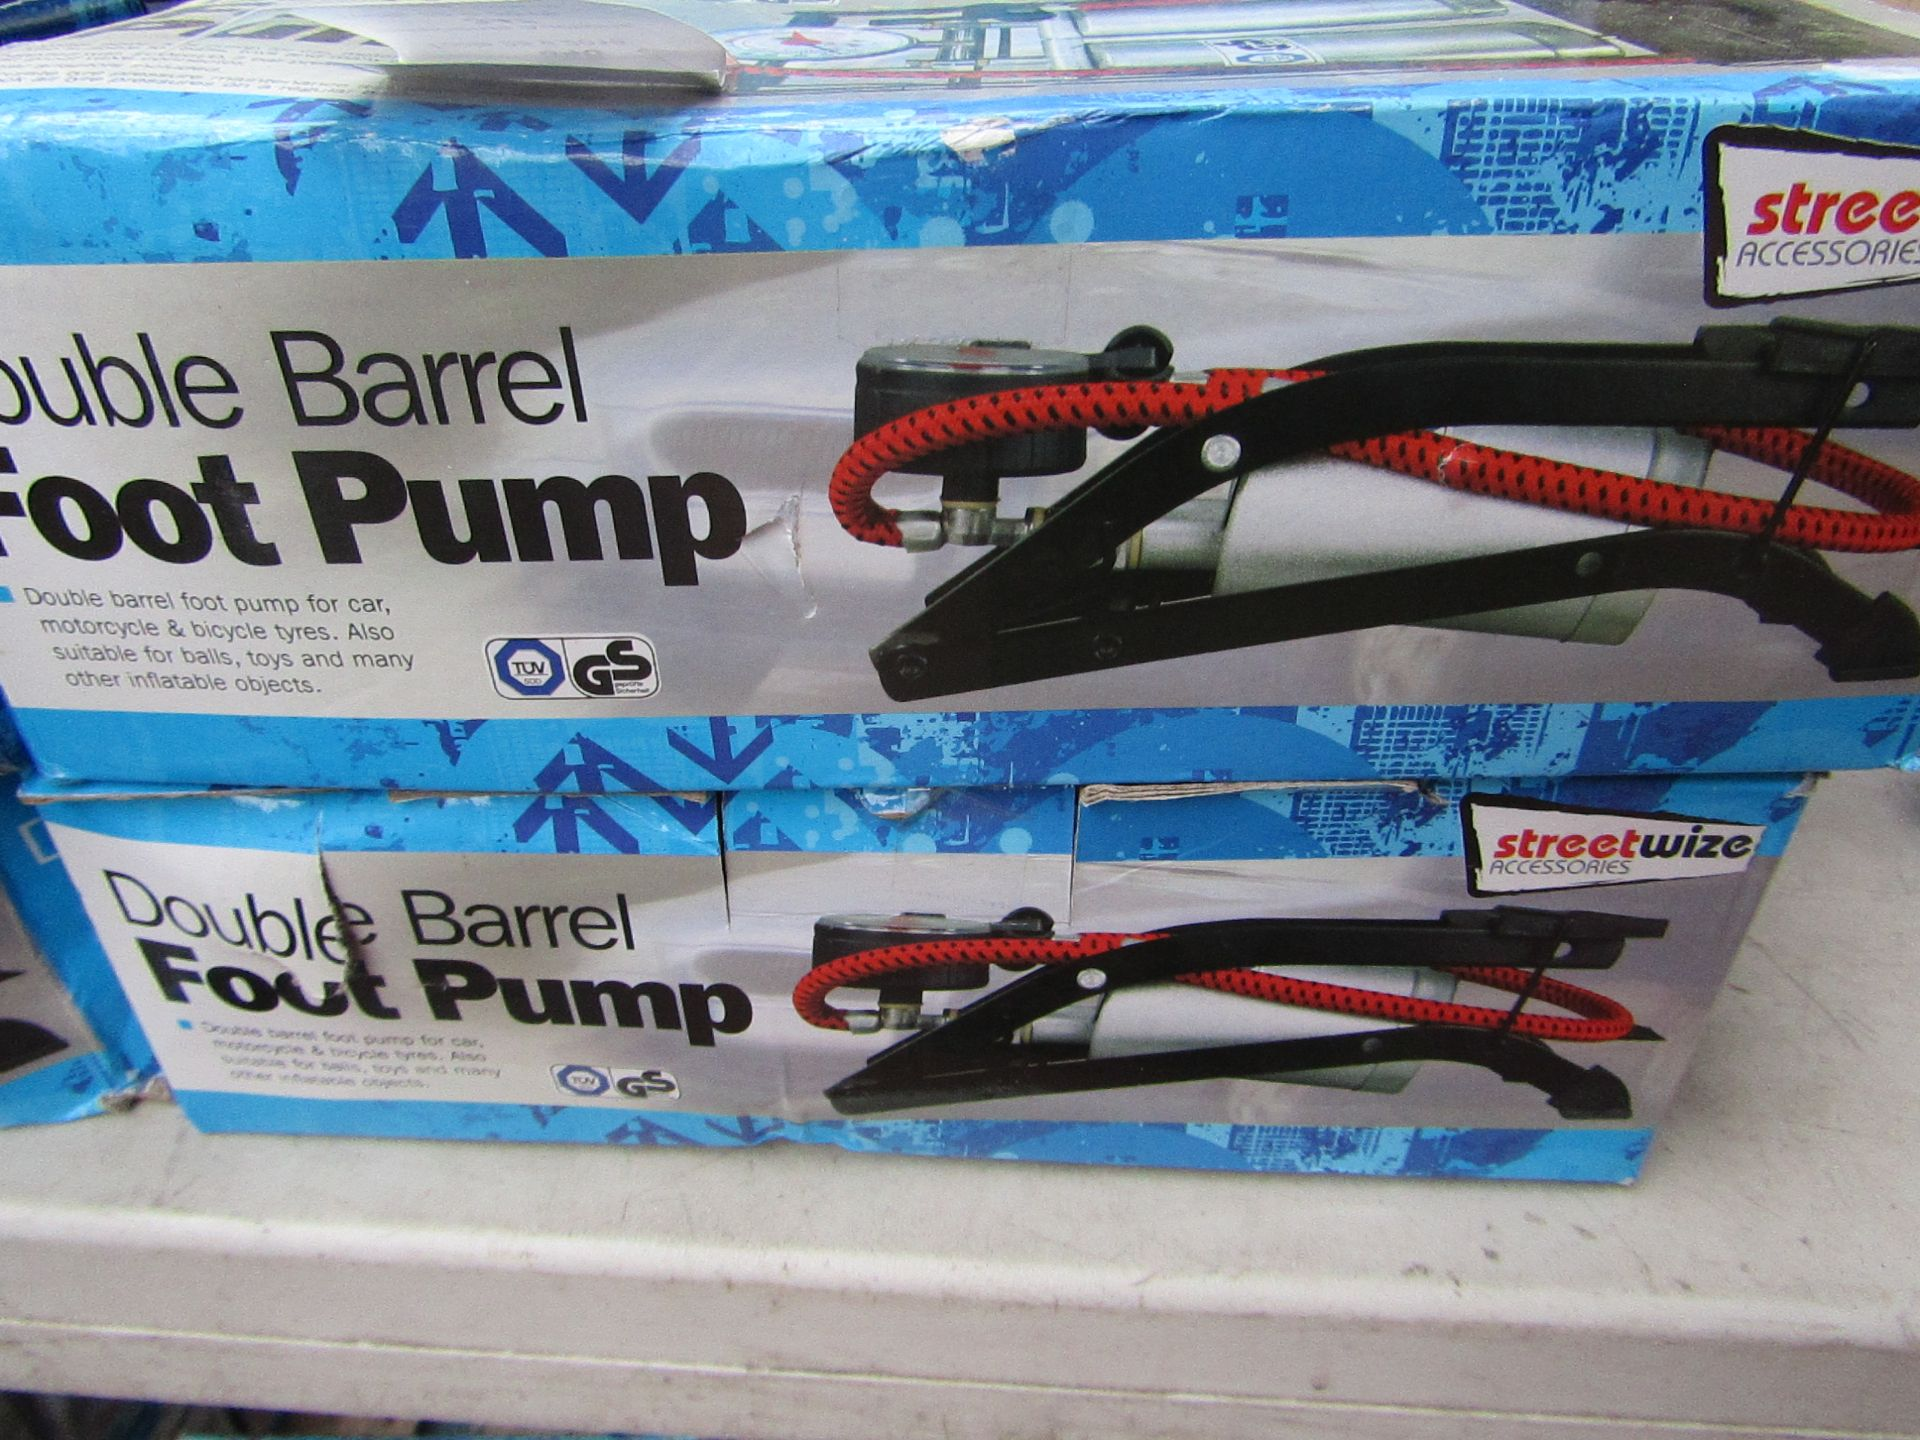 Lot 346 - 2x Double barrelled foot pumps, boxed and unchecked